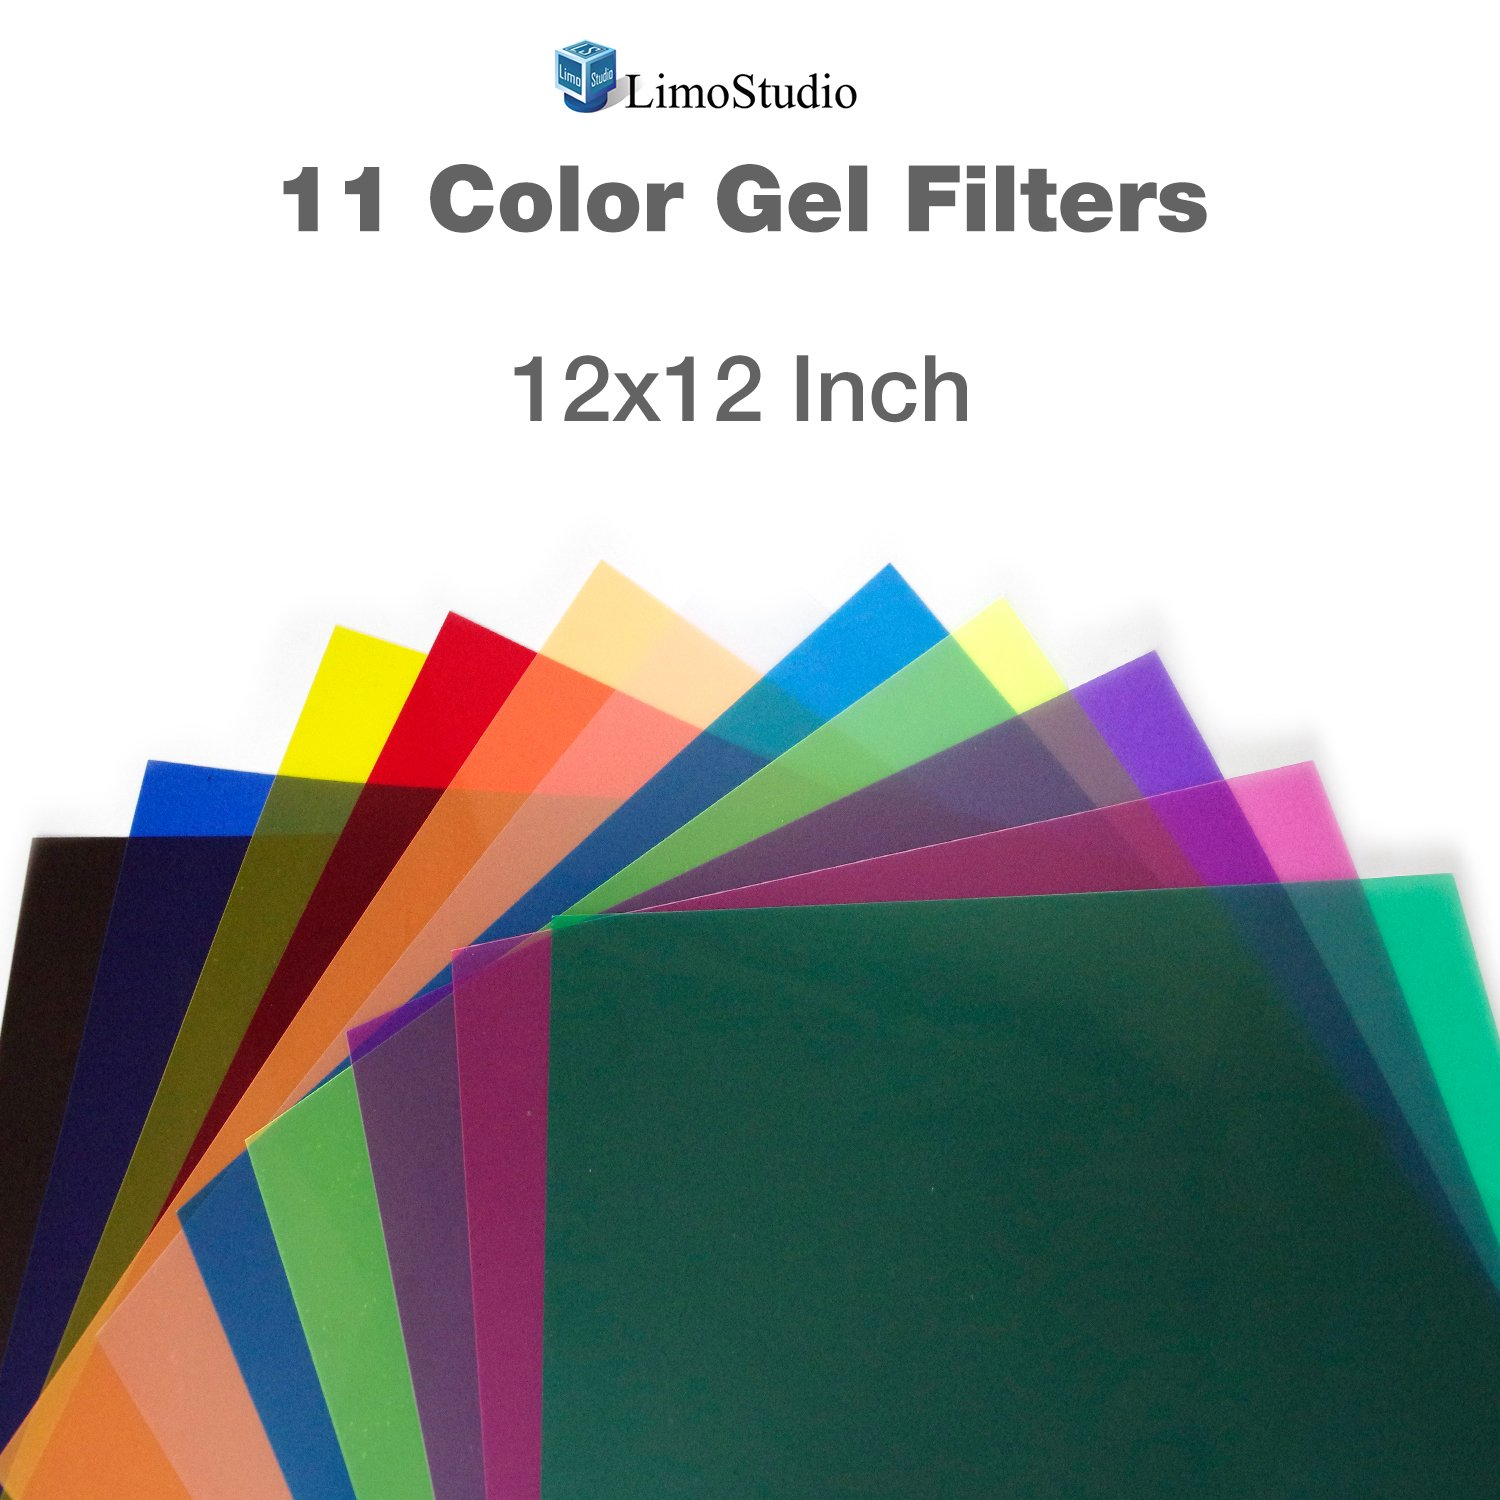 LimoStudio 12'' x 12'' 11pcs Color Gel Lighting Filter Transparent Color Film Plastic Sheets for Camera Flash Light, AGG2556 by LimoStudio